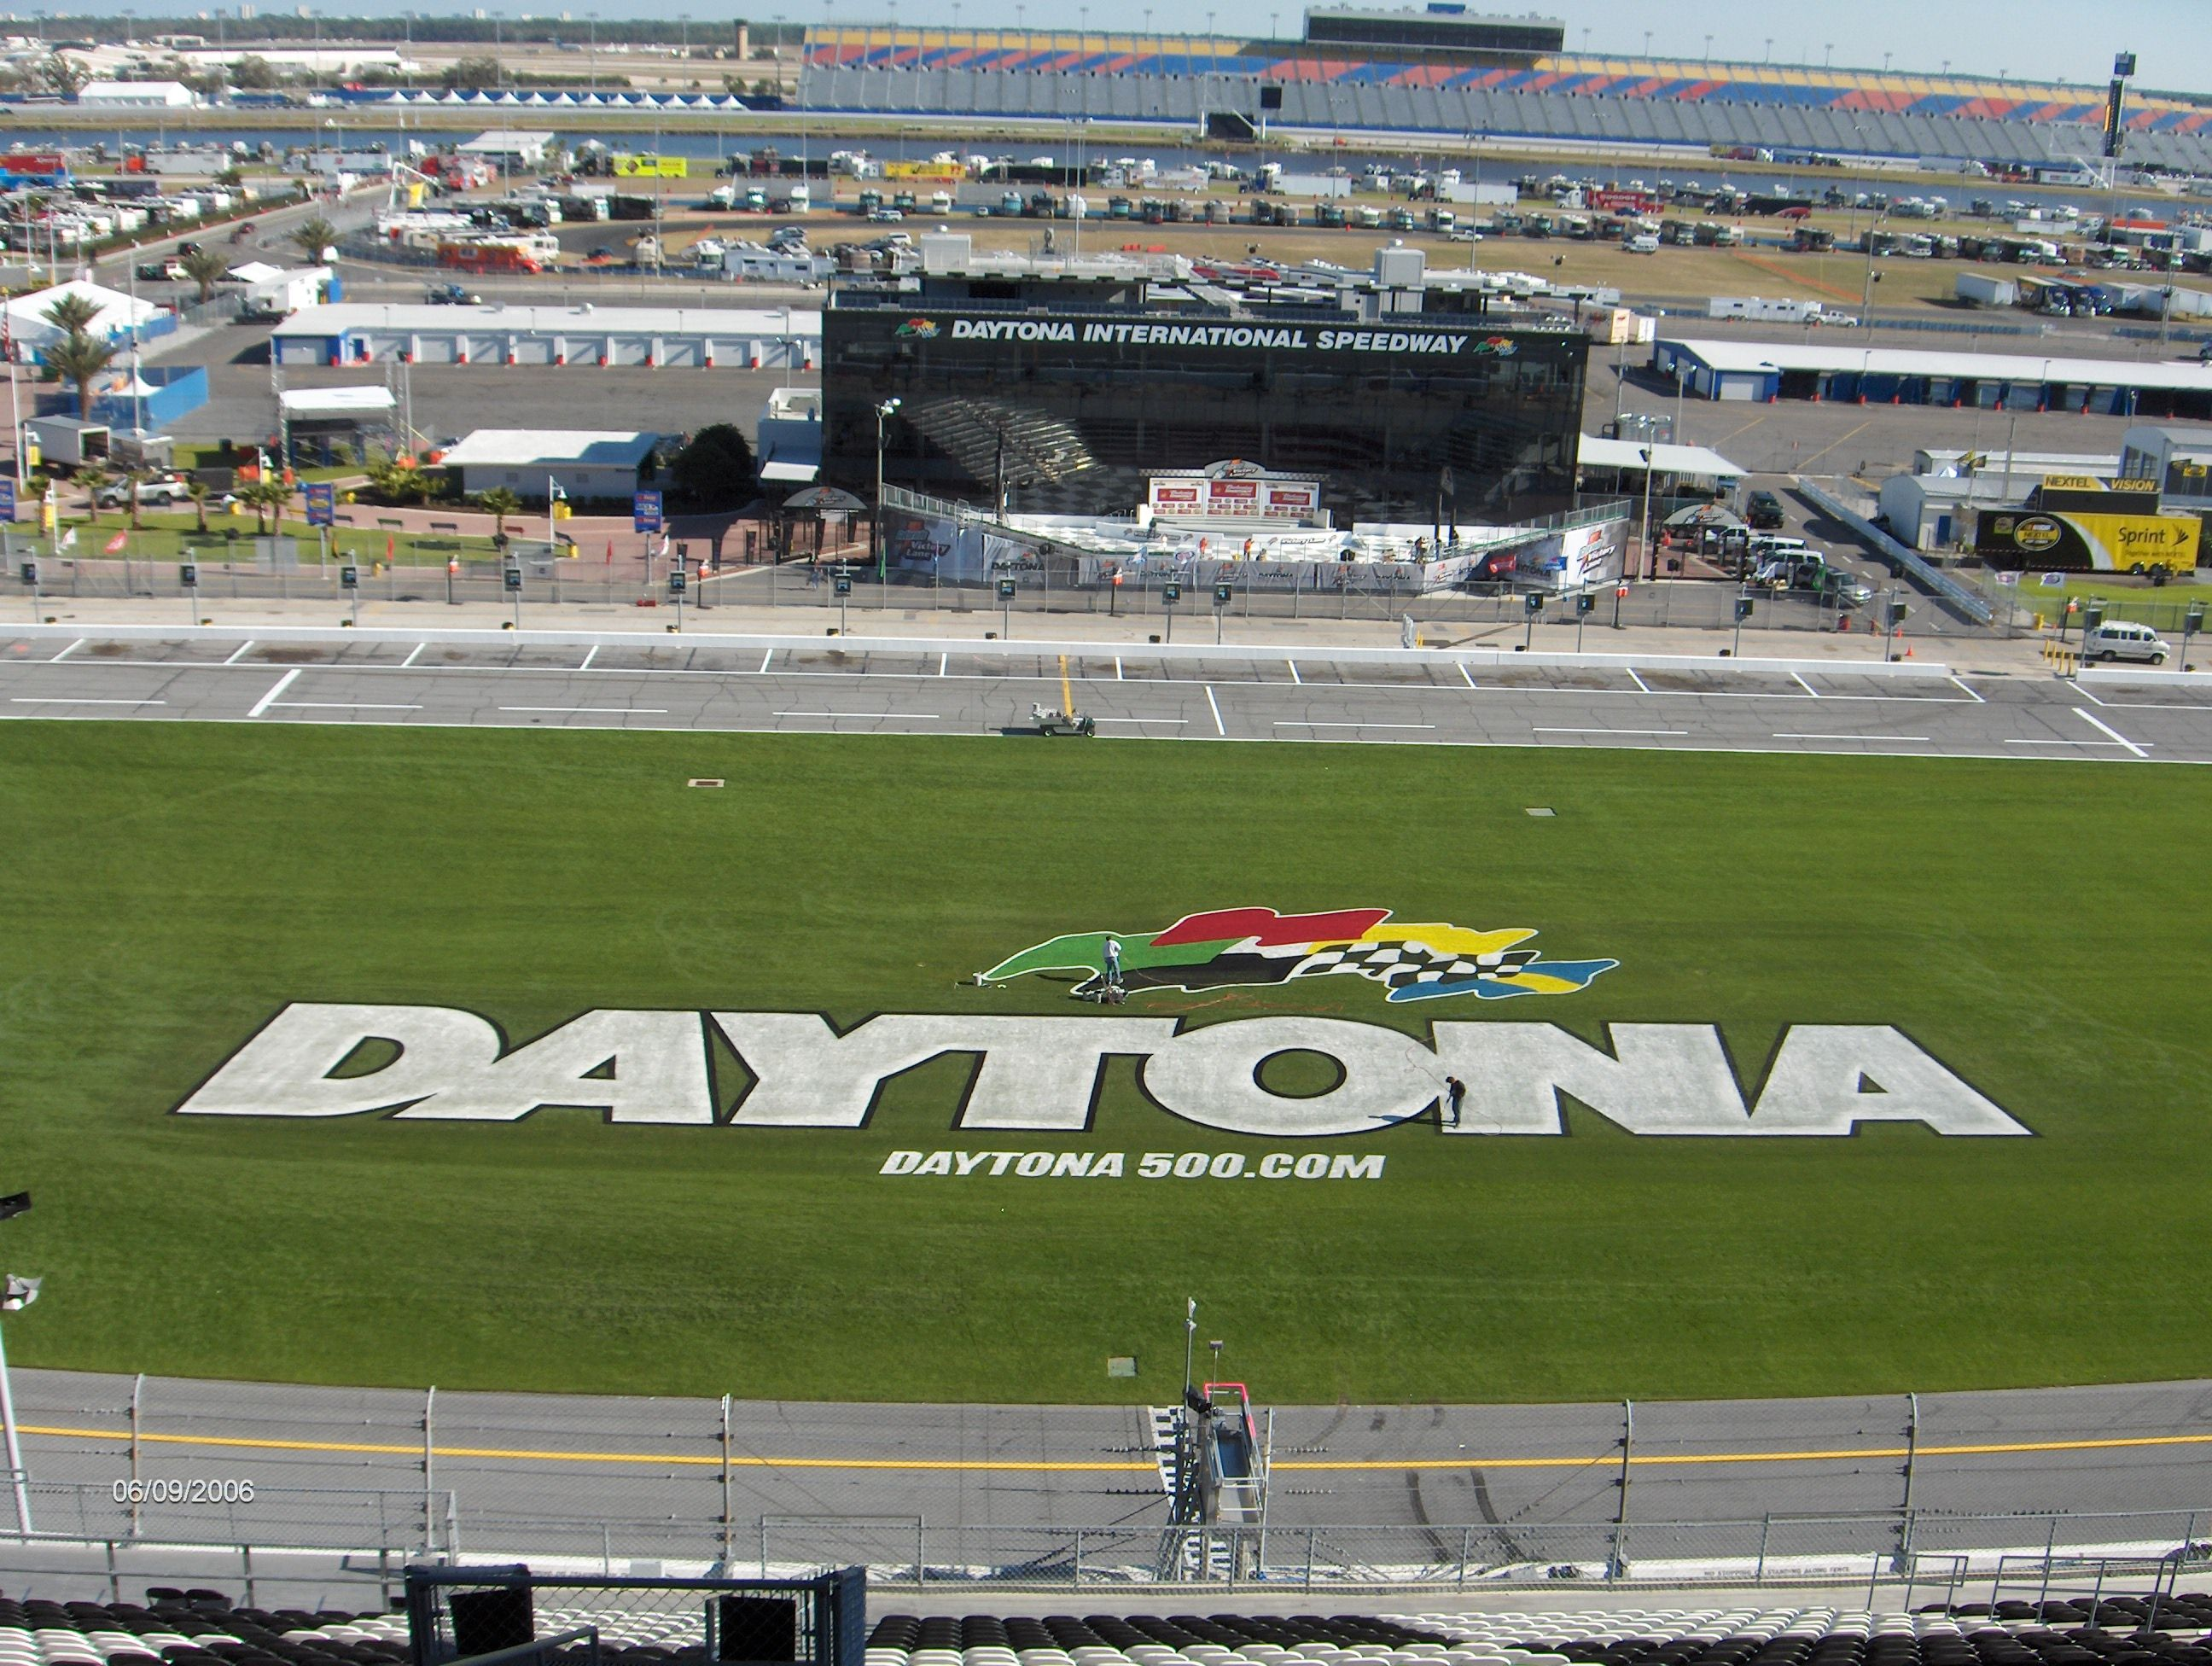 The best Christmas gift I ever gave my brother - a tour of Daytona ...